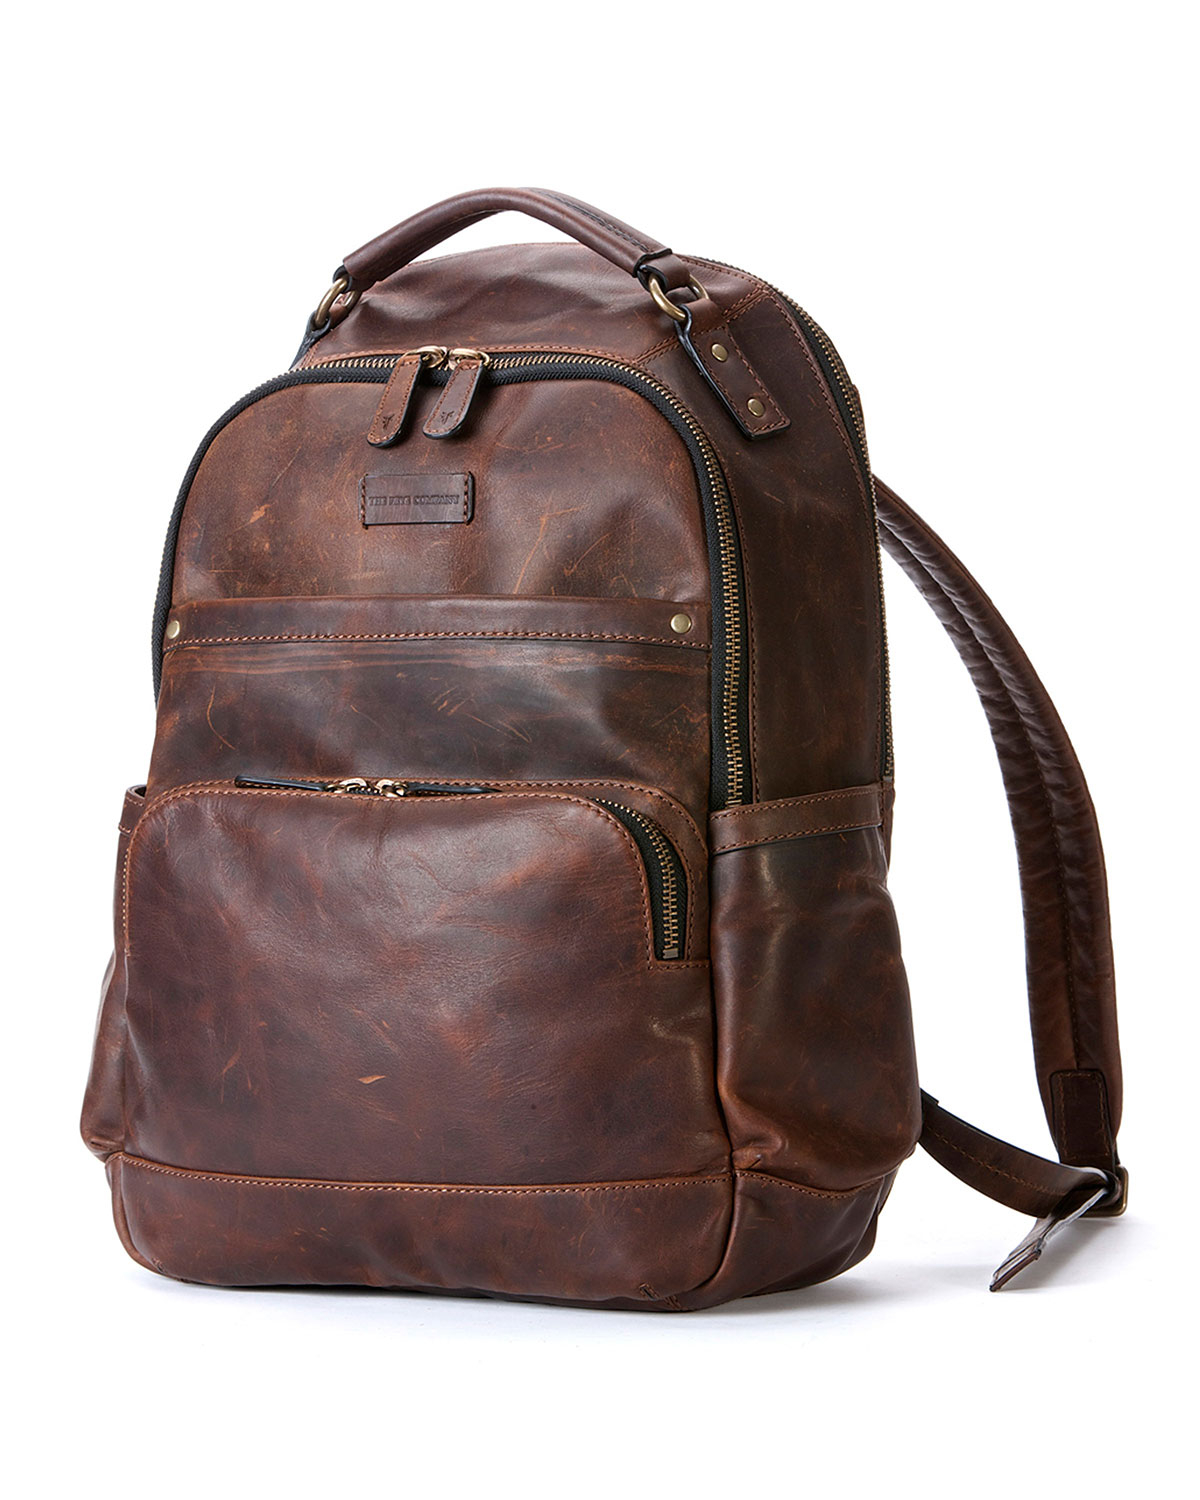 Brown Backpack Leather - Crazy Backpacks